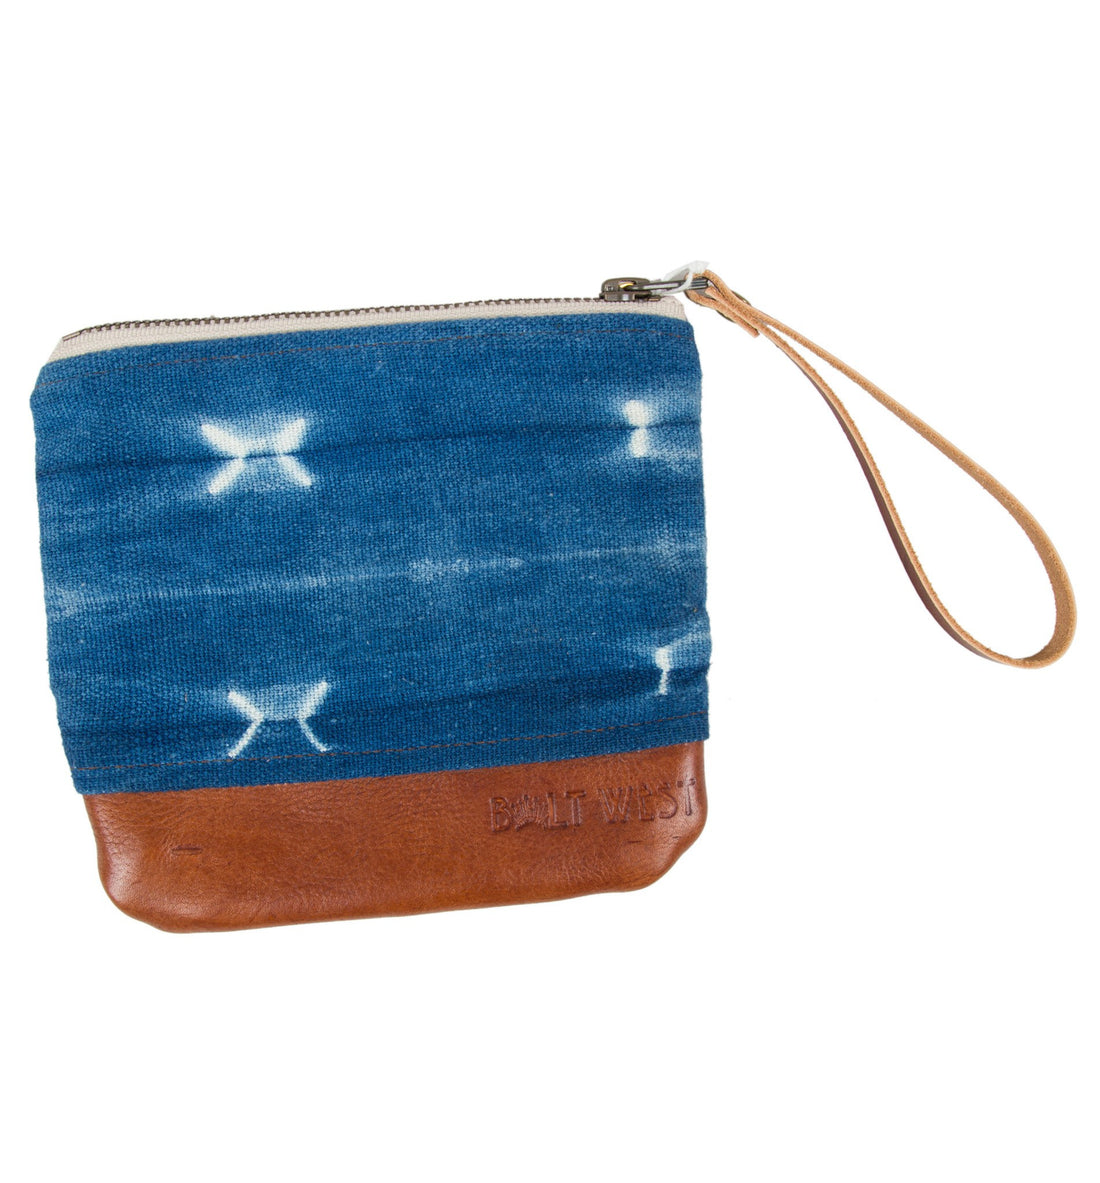 Bolt West LE Wristlet - Accessories: Bags - Iron and Resin